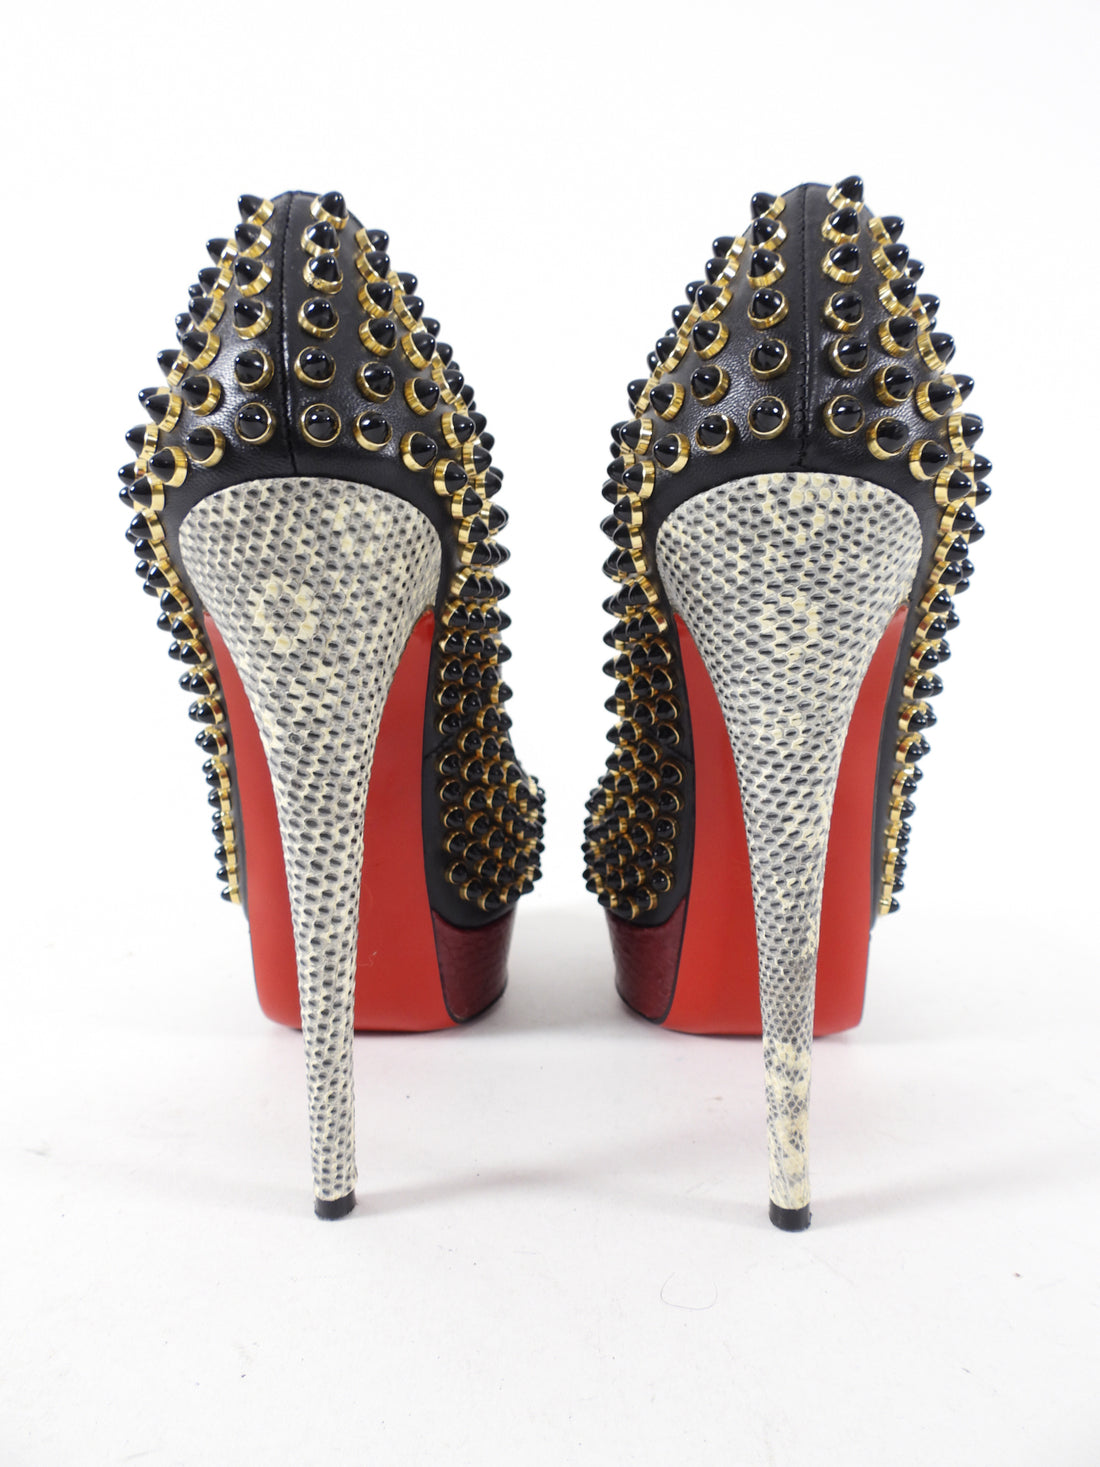 Christian Louboutin Gold Stud Tricolor Lady Peep Pumps - 36.5 / USA 6